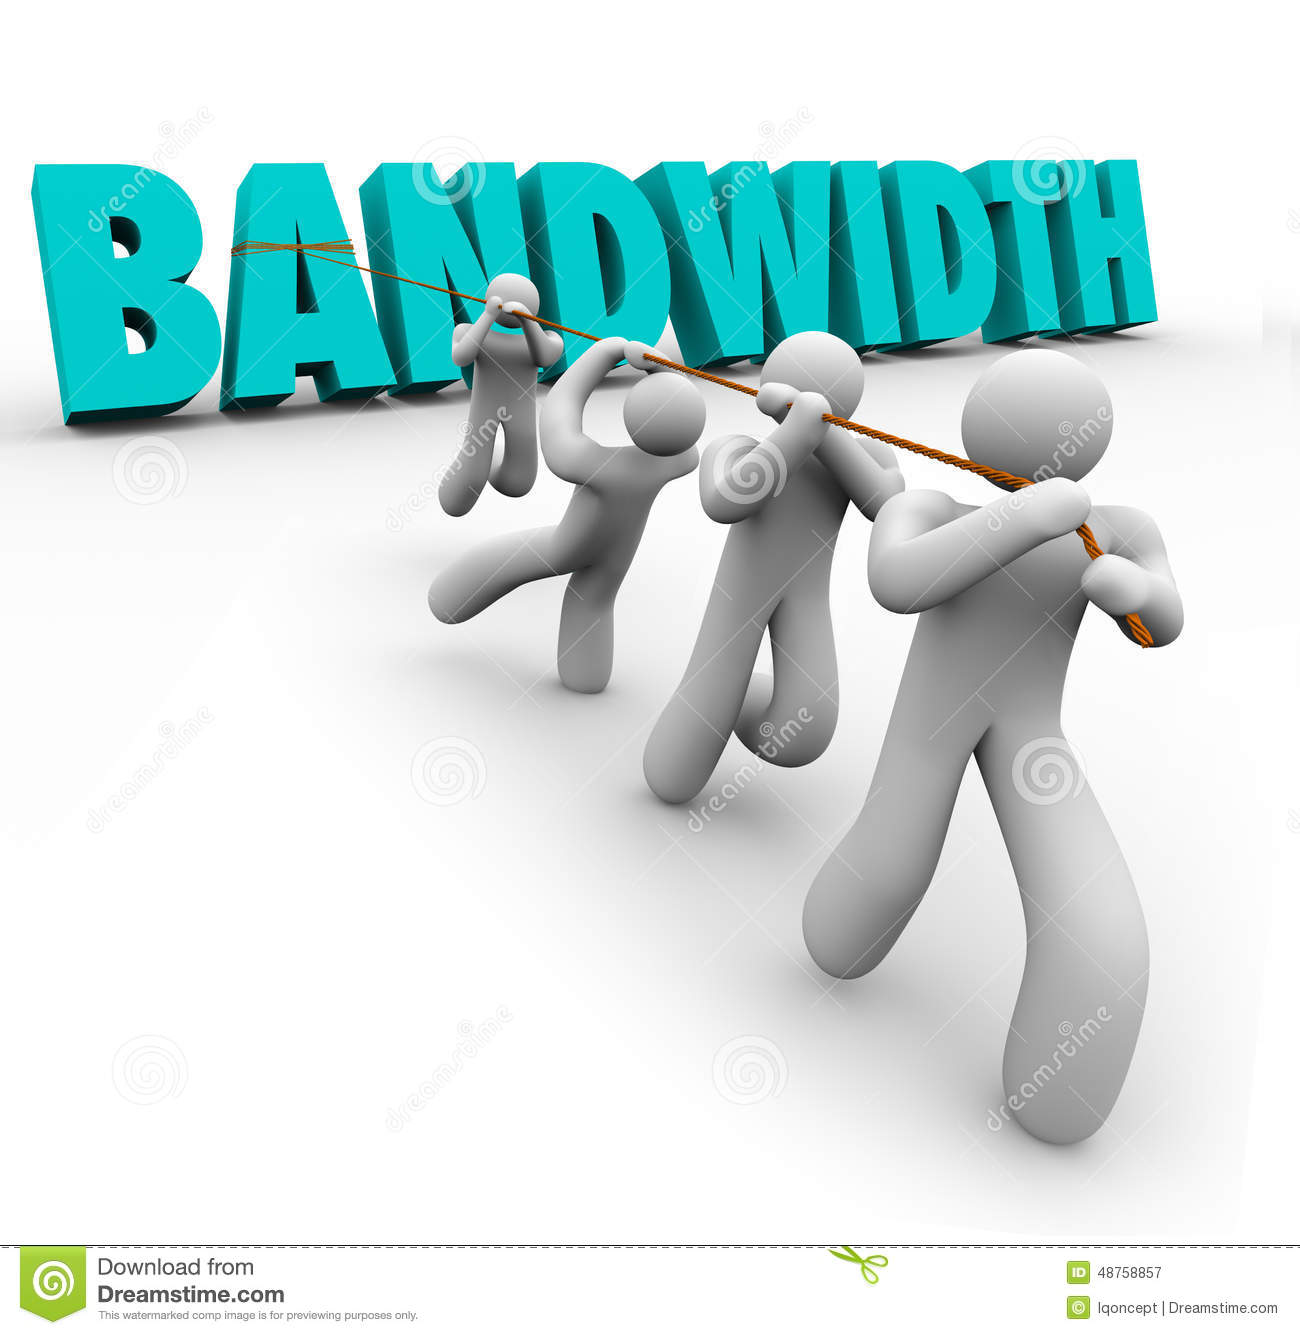 Bandwidth Word Pulled Team Resources Limited Ability Time Stock Illustration